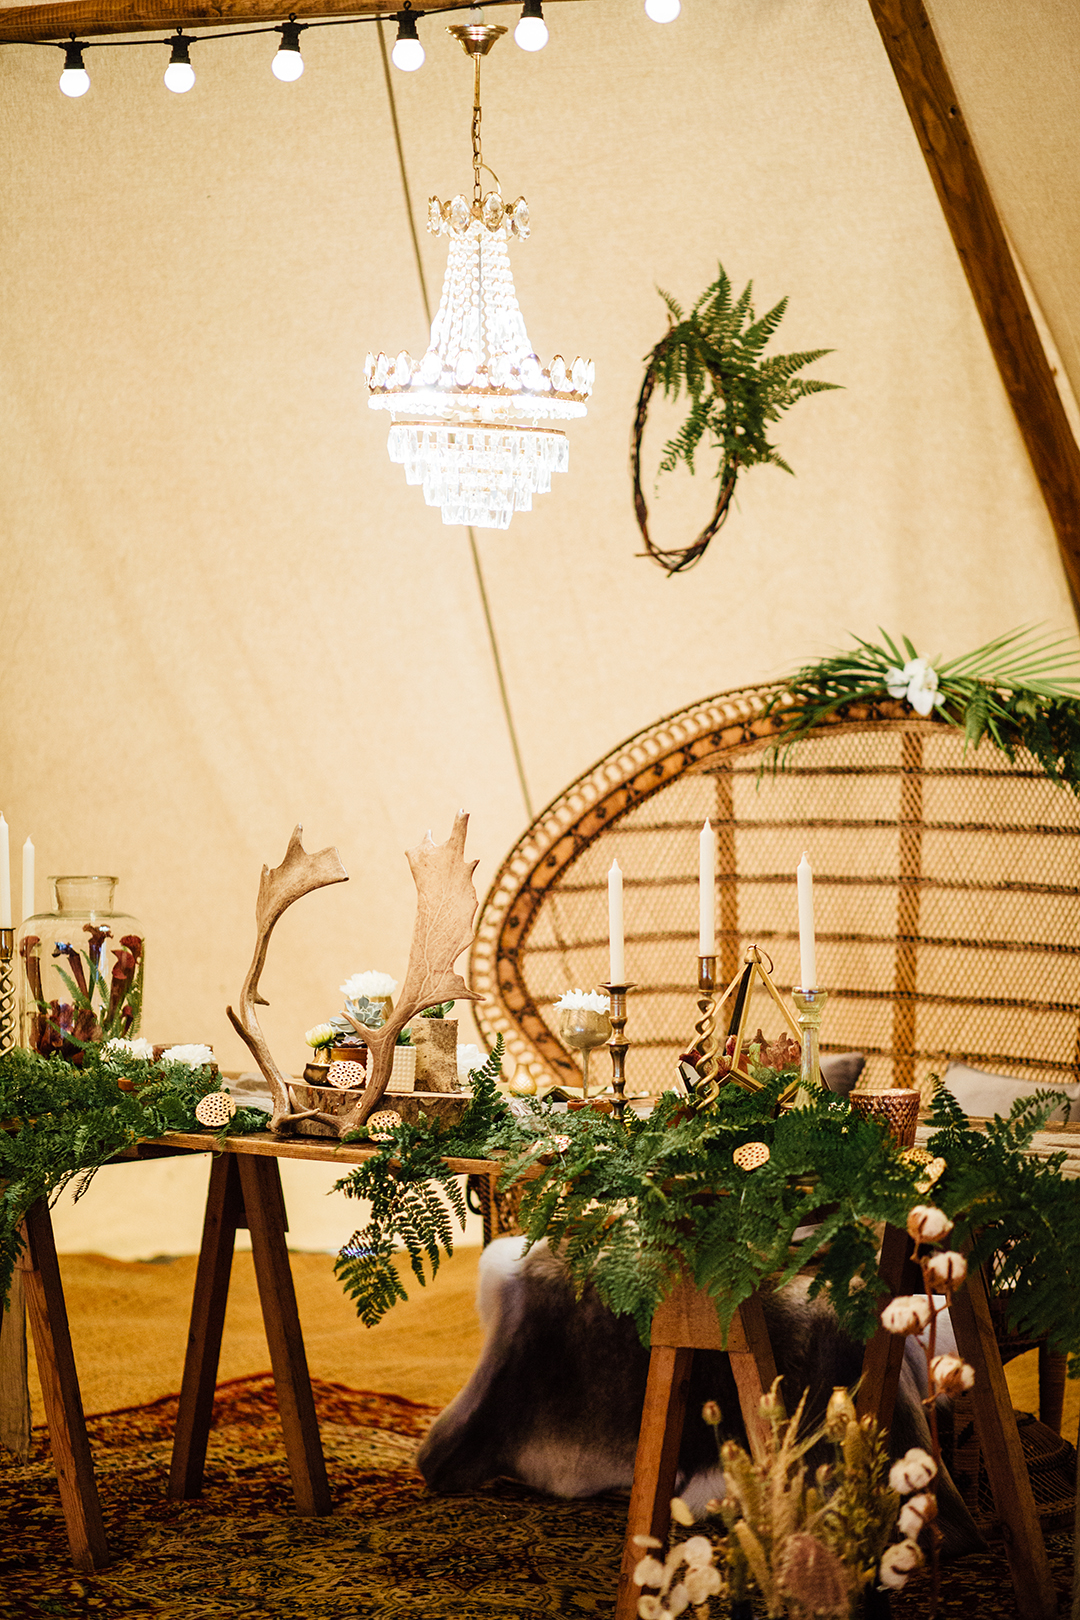 Kkent-outdoor-festival-wedding-venue-wilderness-weddings